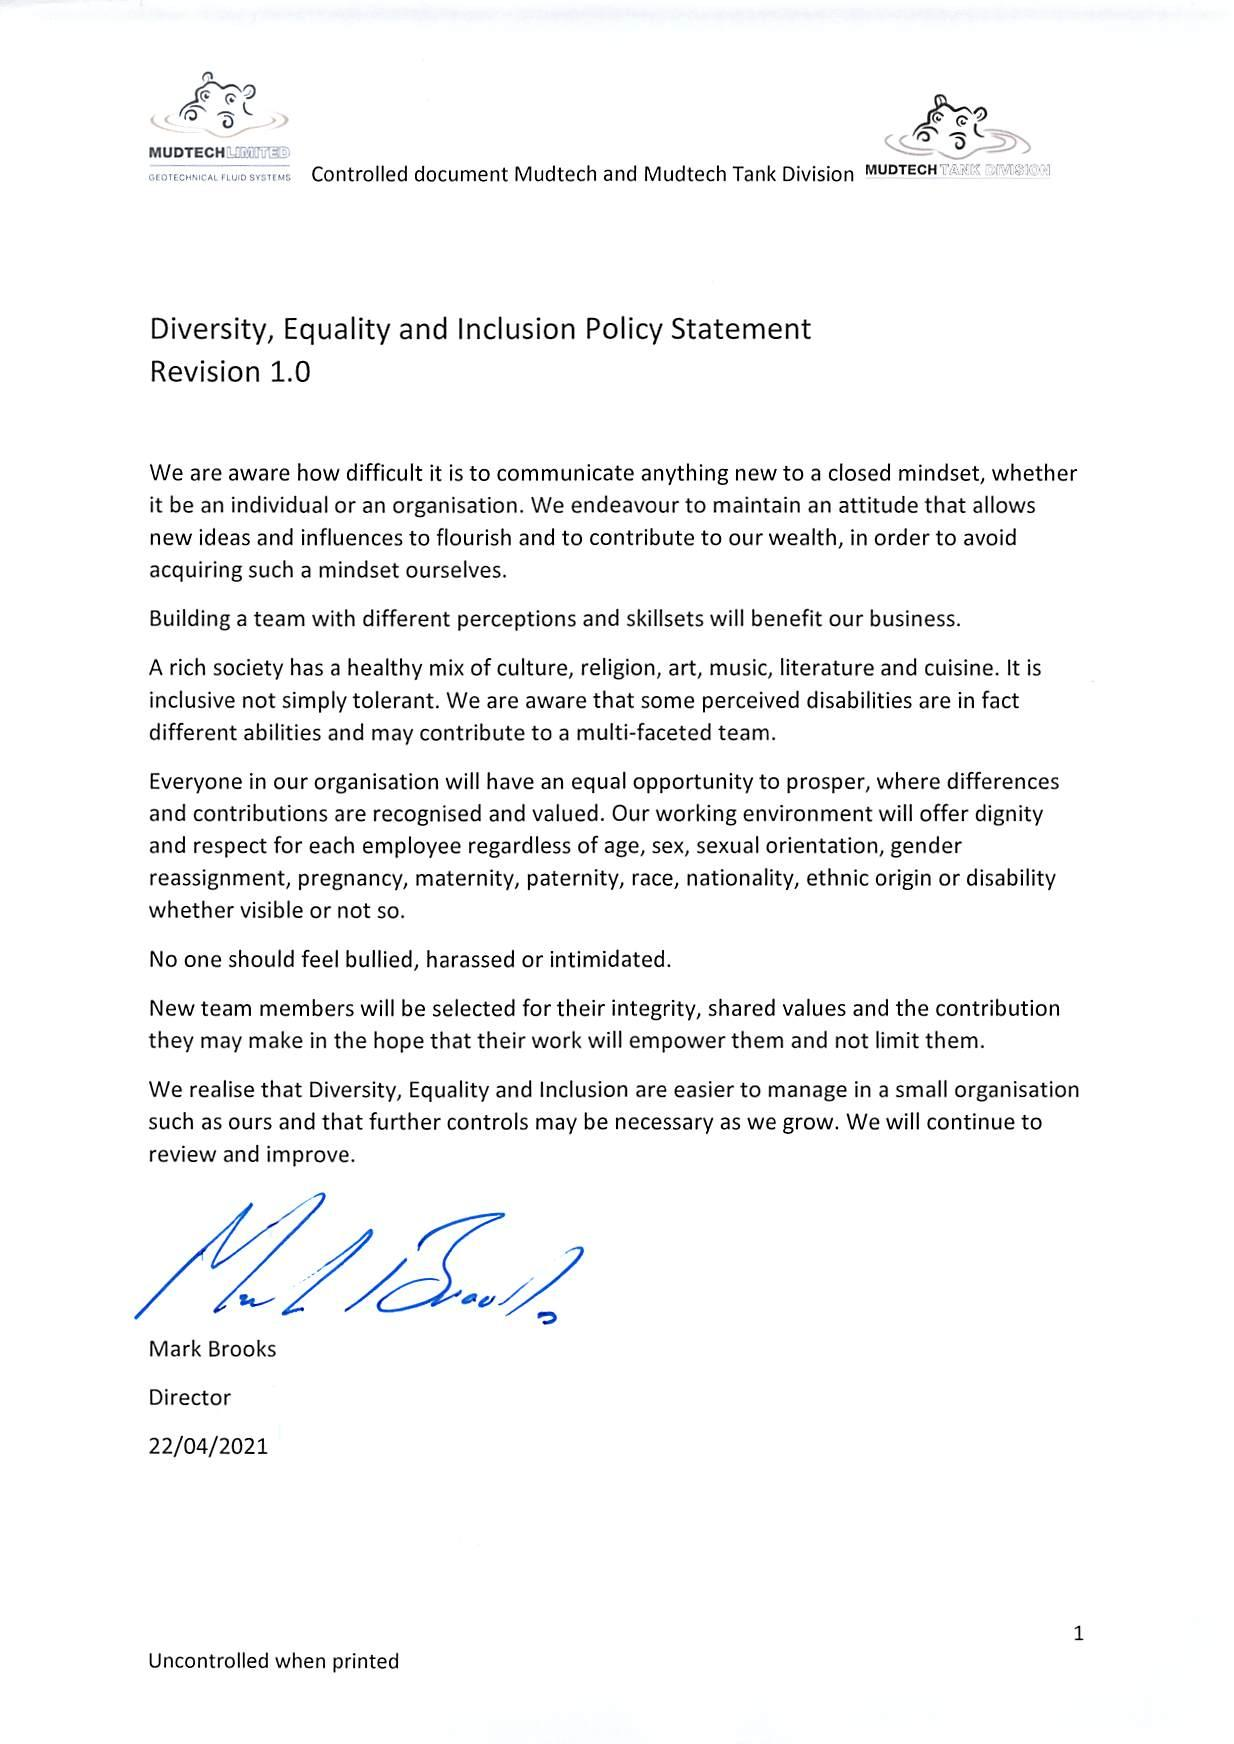 Diversity, Equality and Inclusion Policy Statement Revision 1.0-page-001